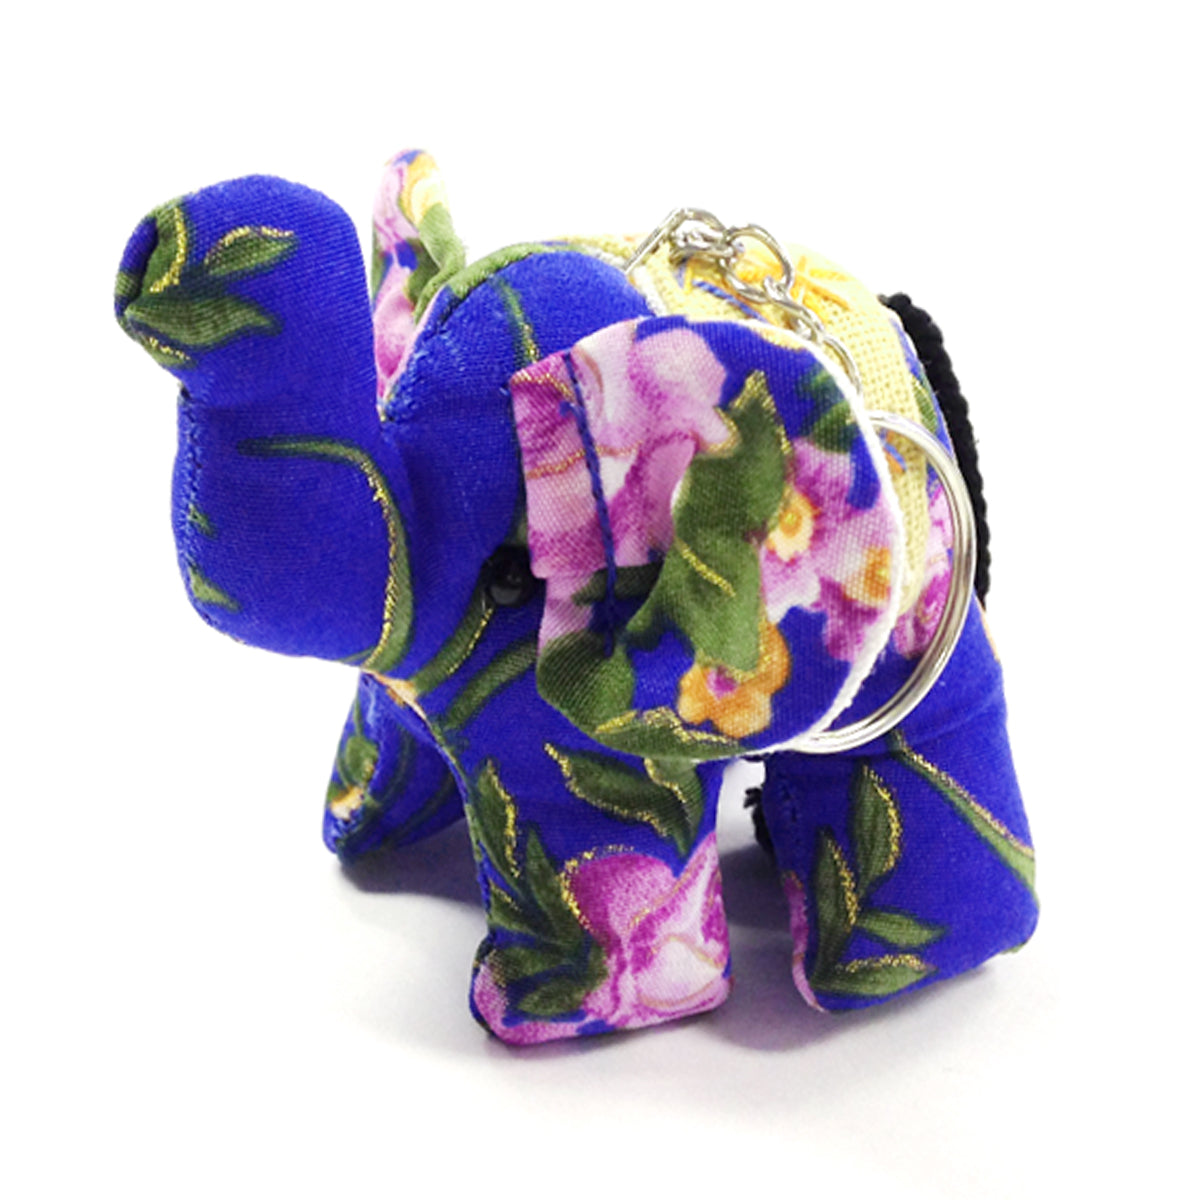 Wrapables Handmade Thai Elephant Keychain, Blue